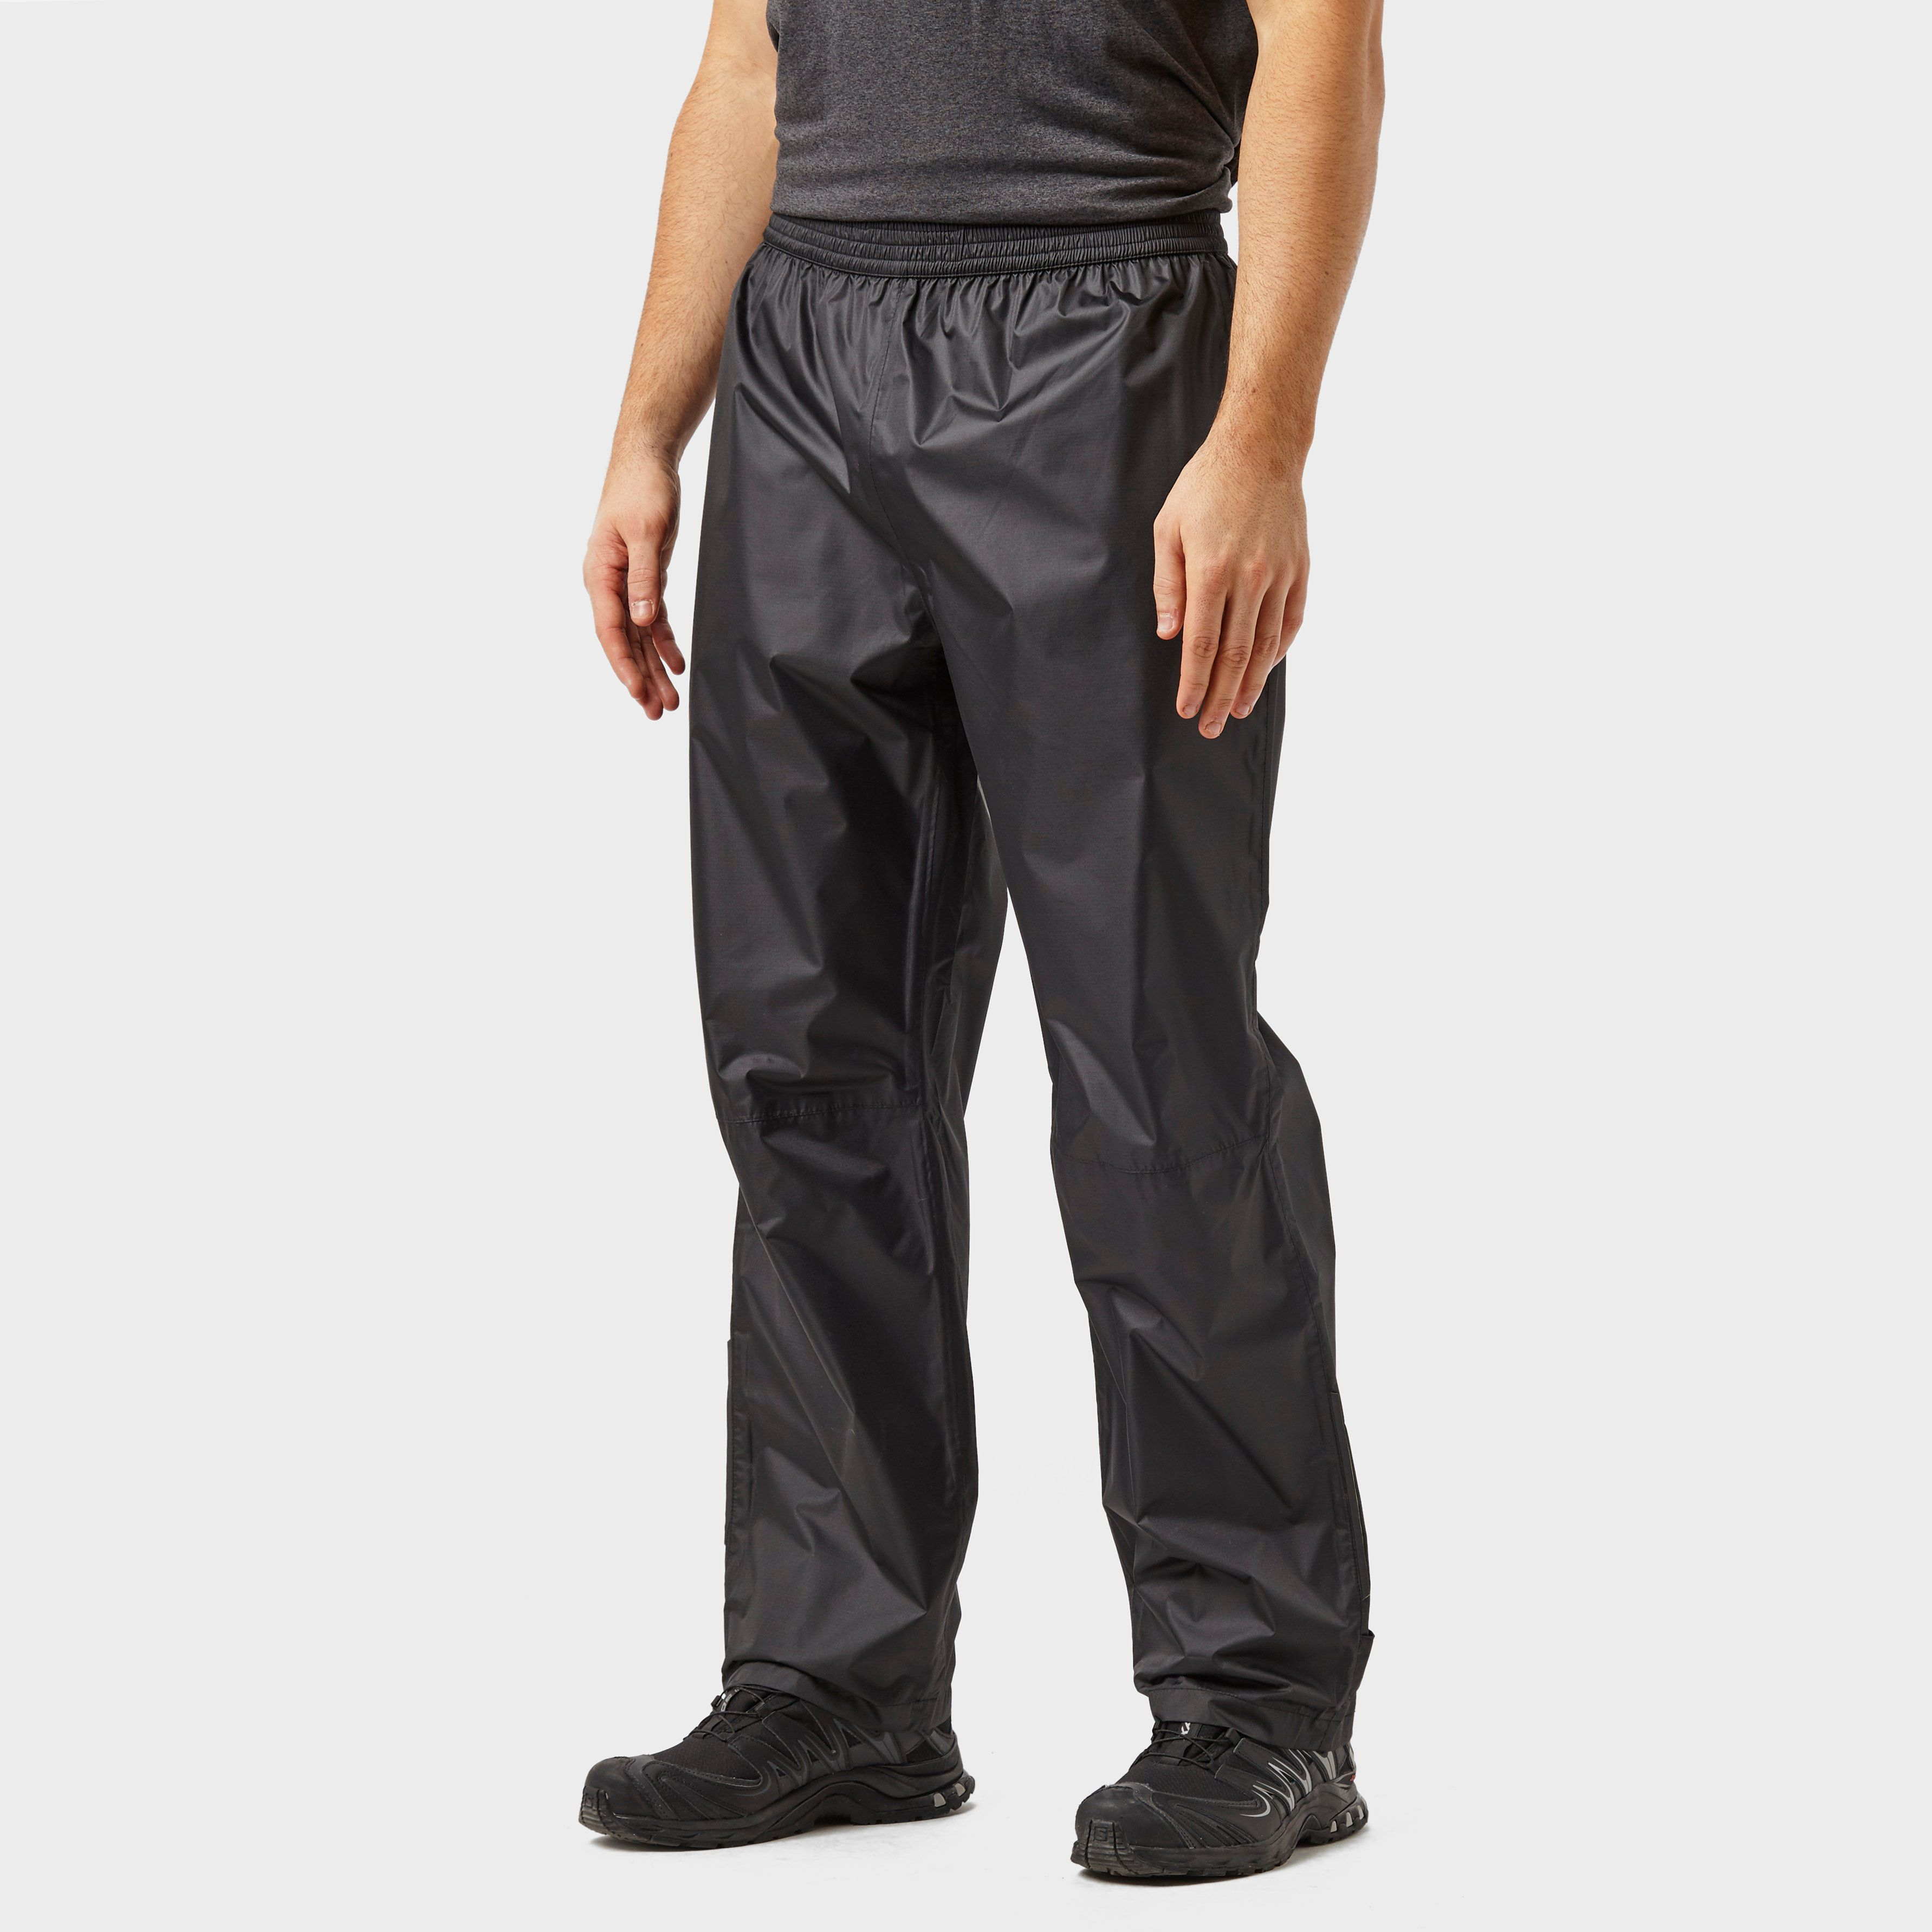 ALTURA Men's Nevis Waterpoof Cycling trousers